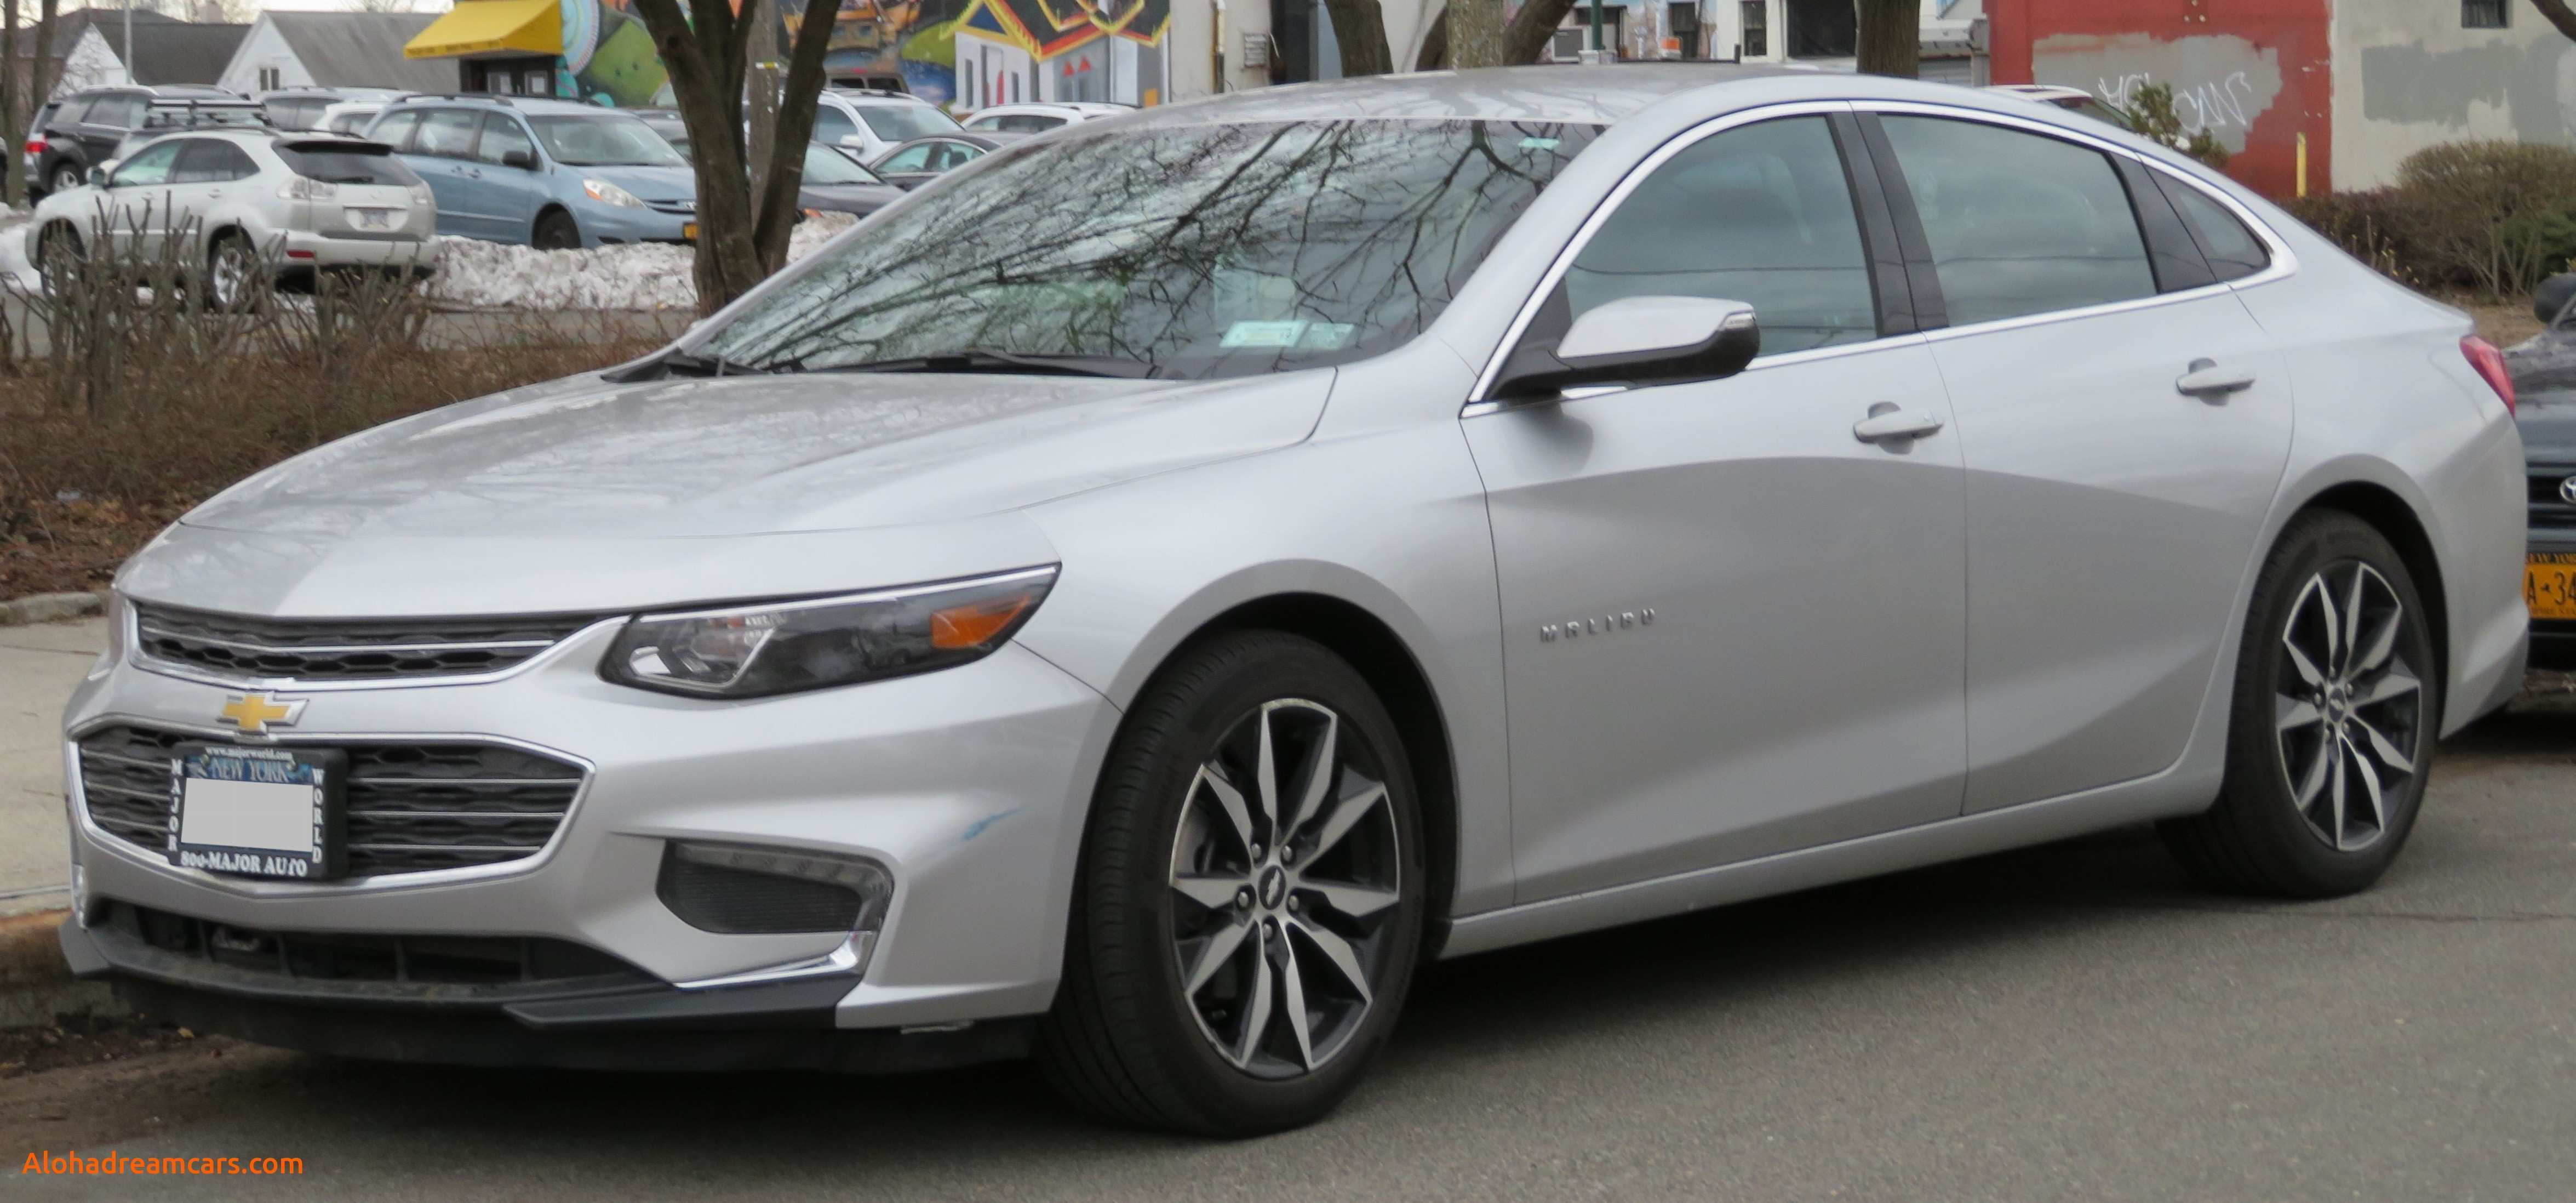 12 Best 2019 Chevy Malibu Ss Performance And New Engine